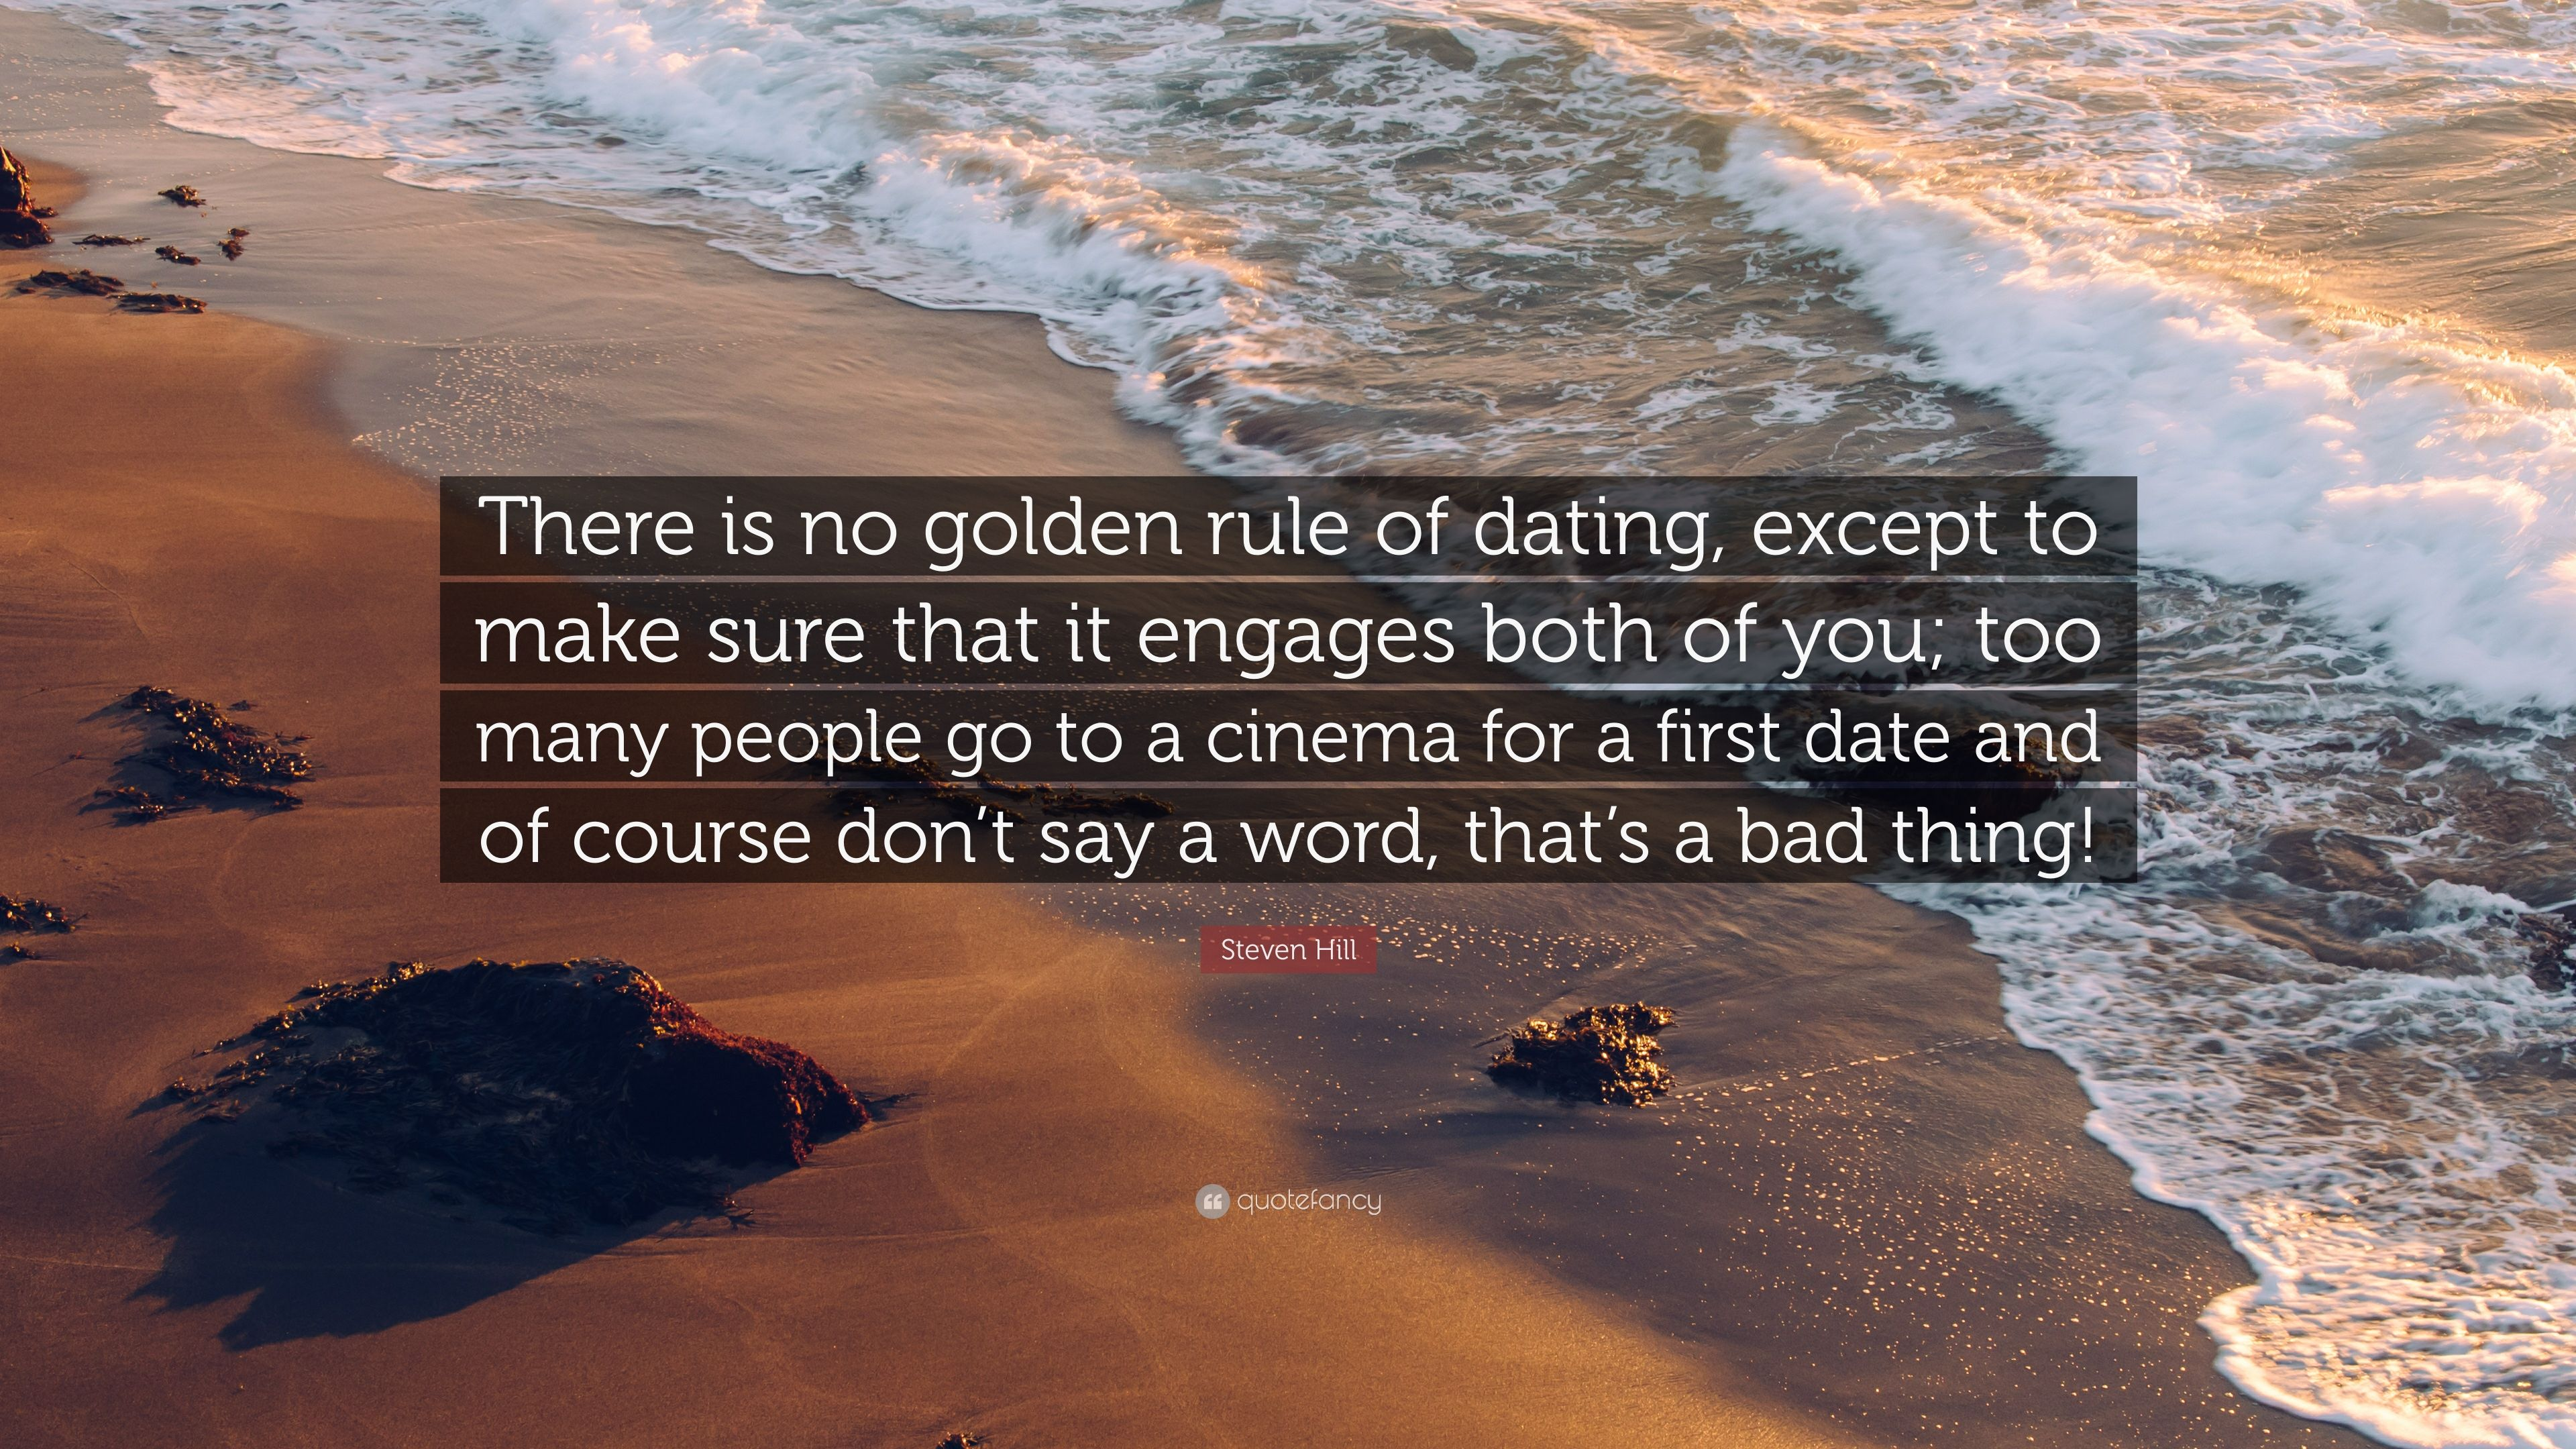 godly dating rules For the christian teenager this whole business of dating can be very distracting as christians, our primary focus, especially in our single years, should be on our relationship with god rather than spending their energy pursuing the lord, they are distracted by the dating culture.